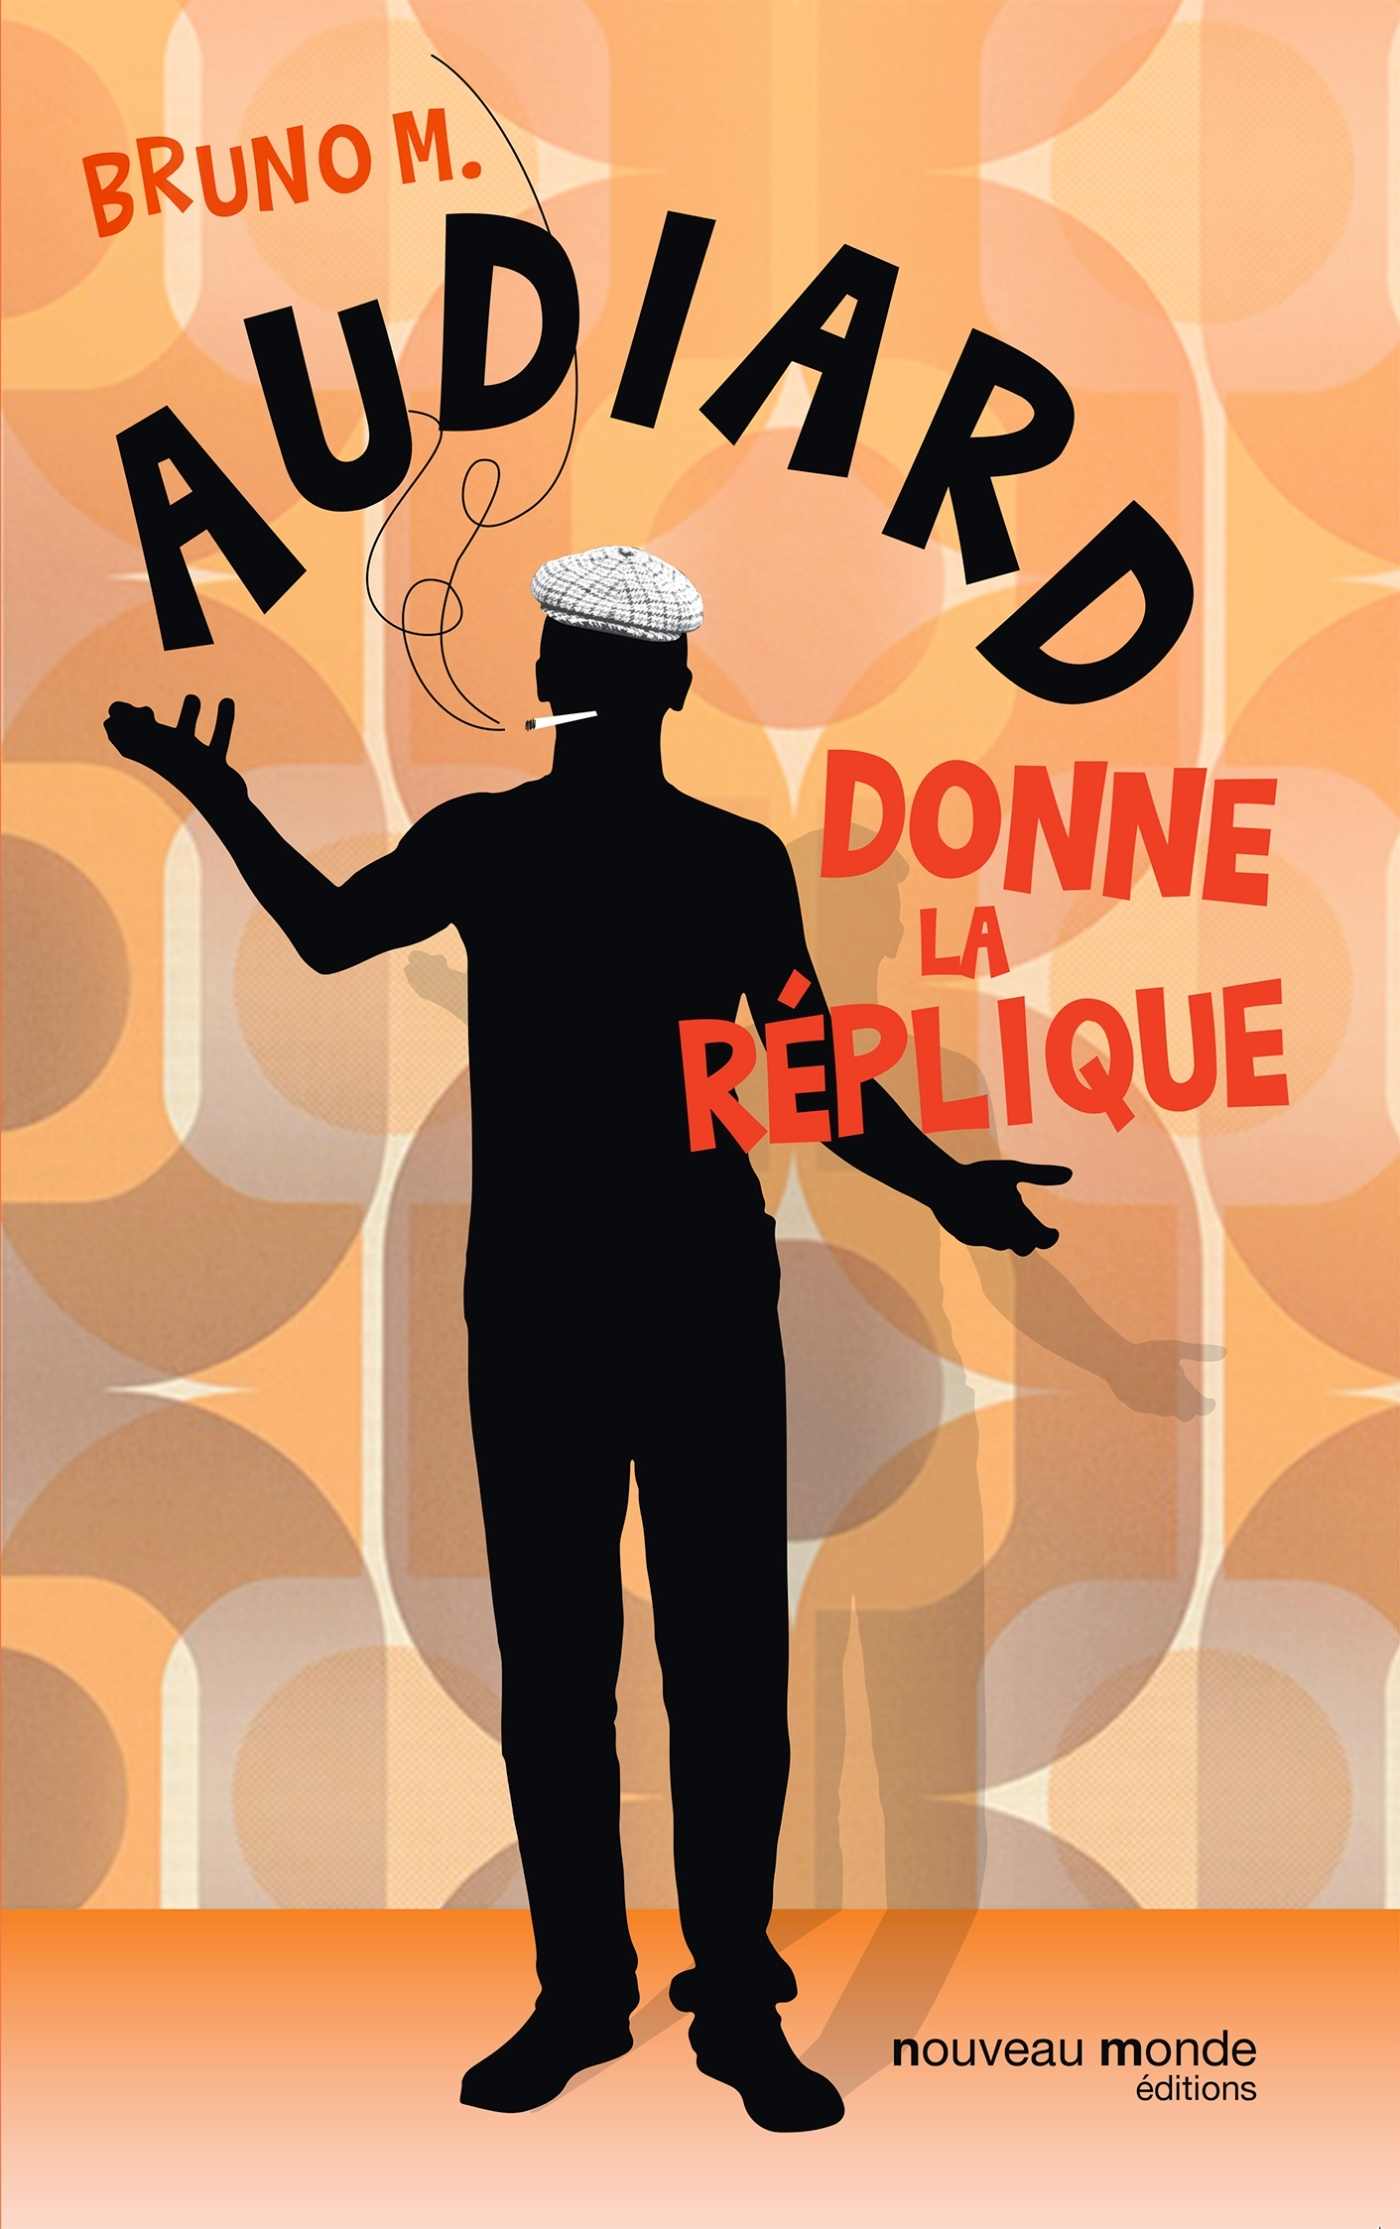 AUDIARD DONNE LA REPLIQUE